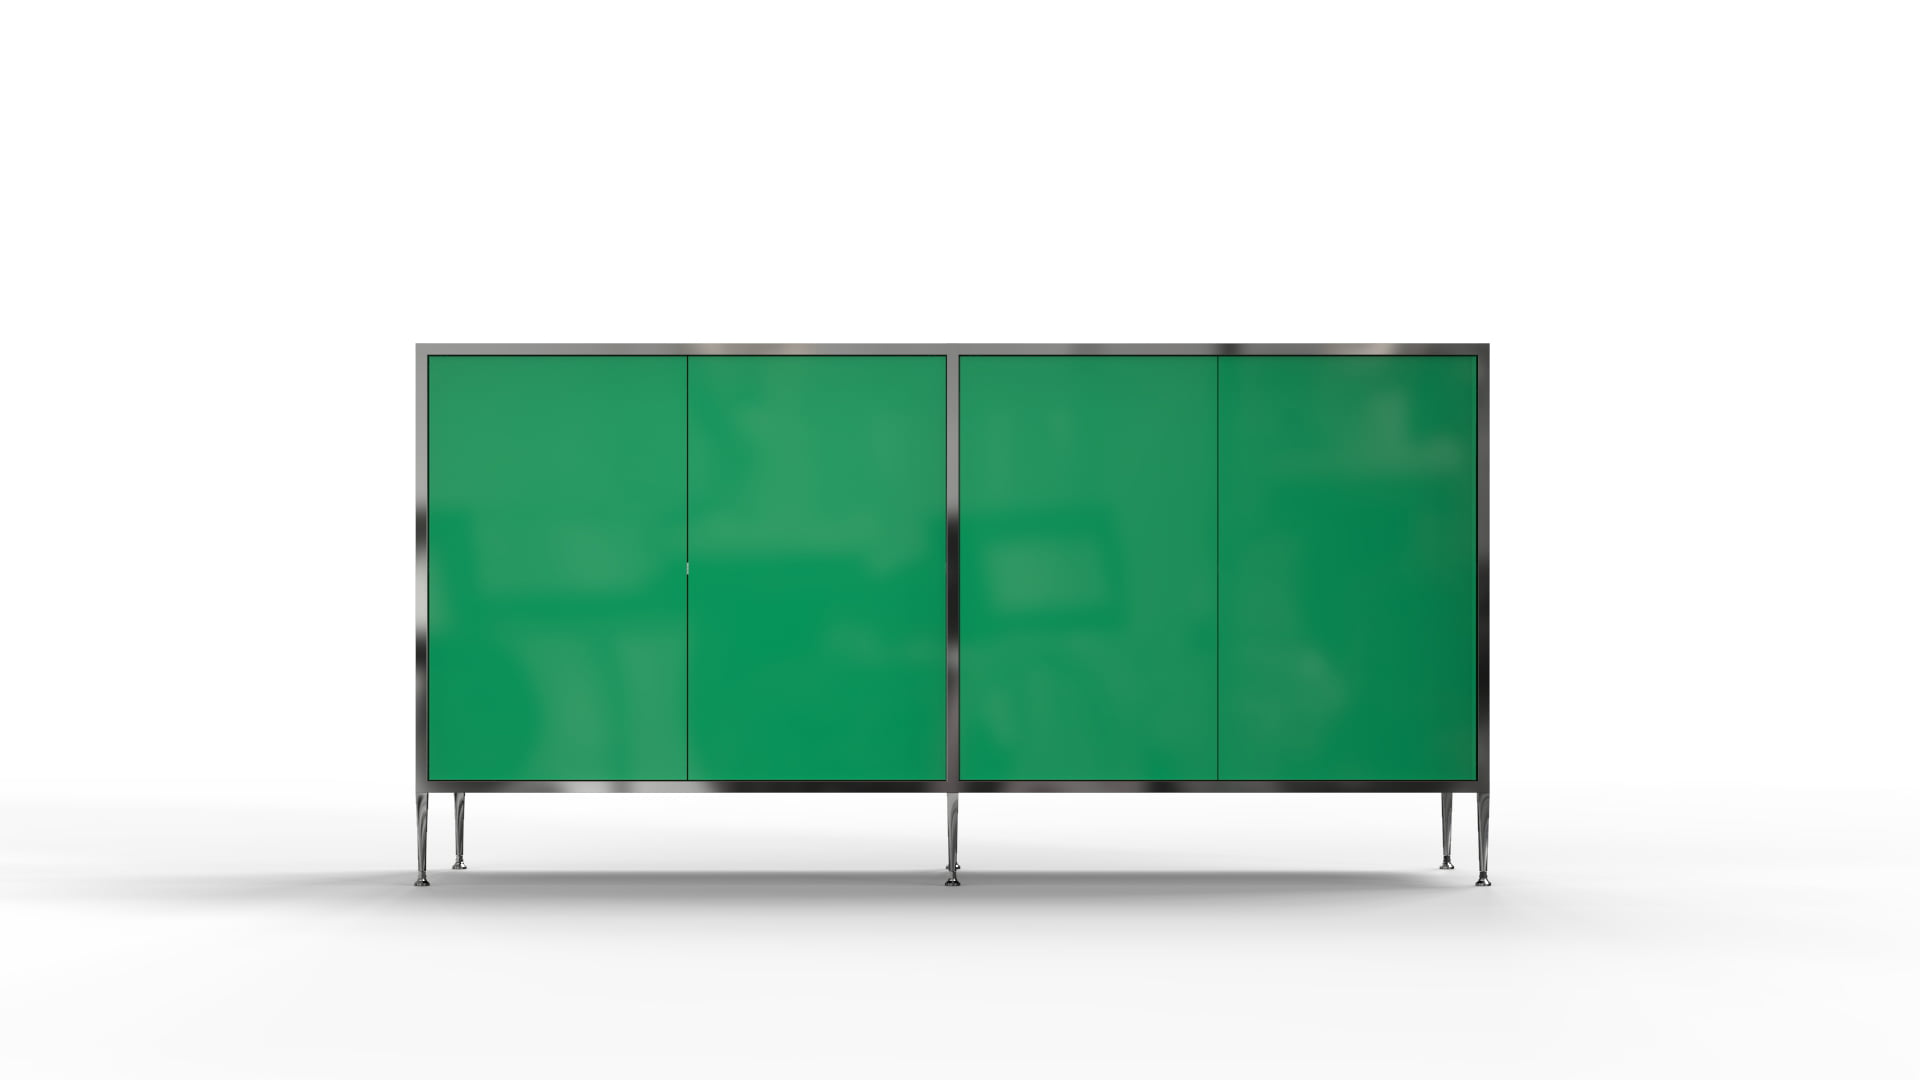 credenza 1 configuration modular adaptive furniture system